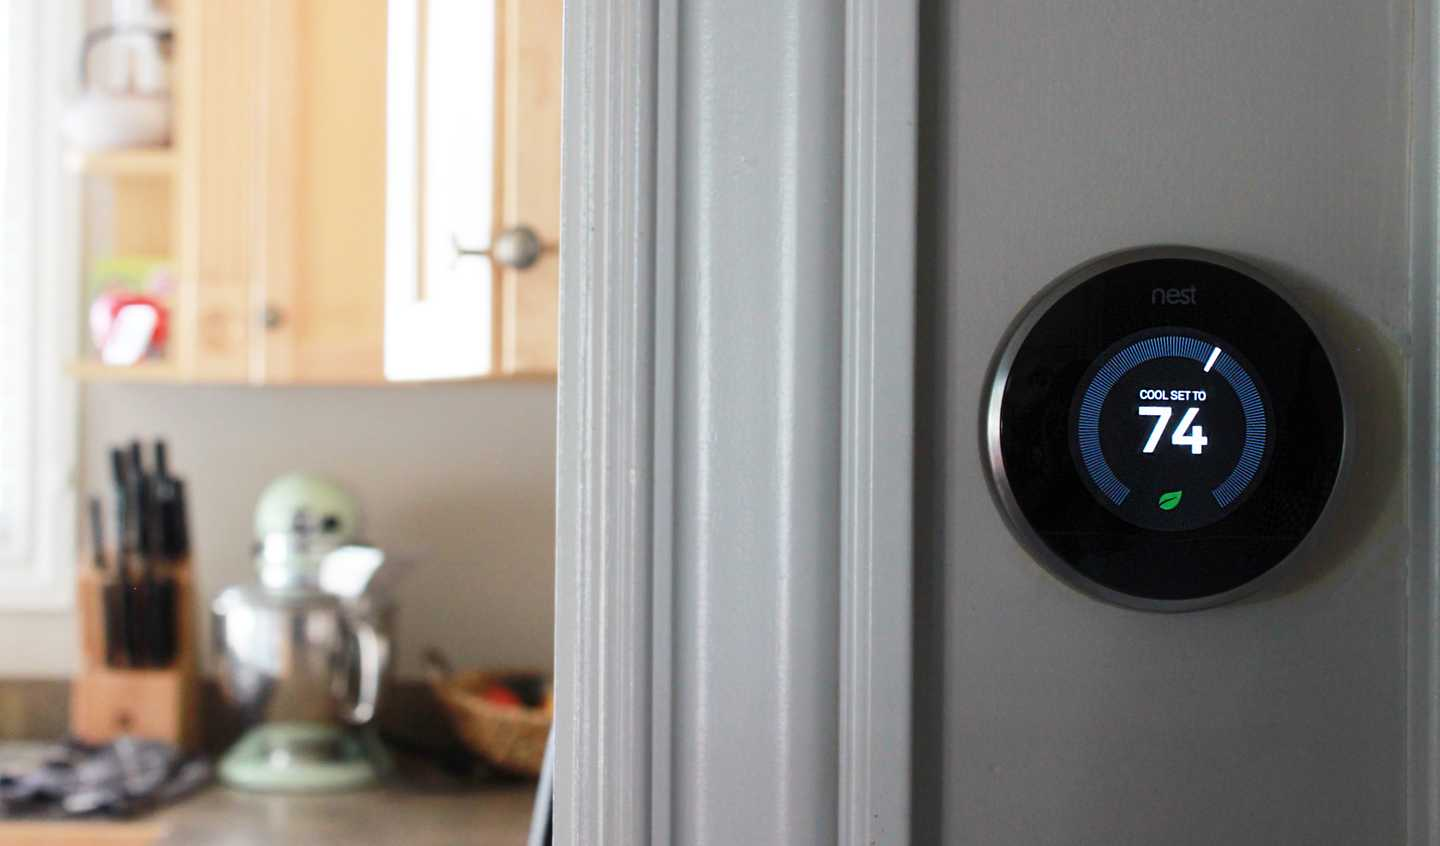 Nest thermostat in home